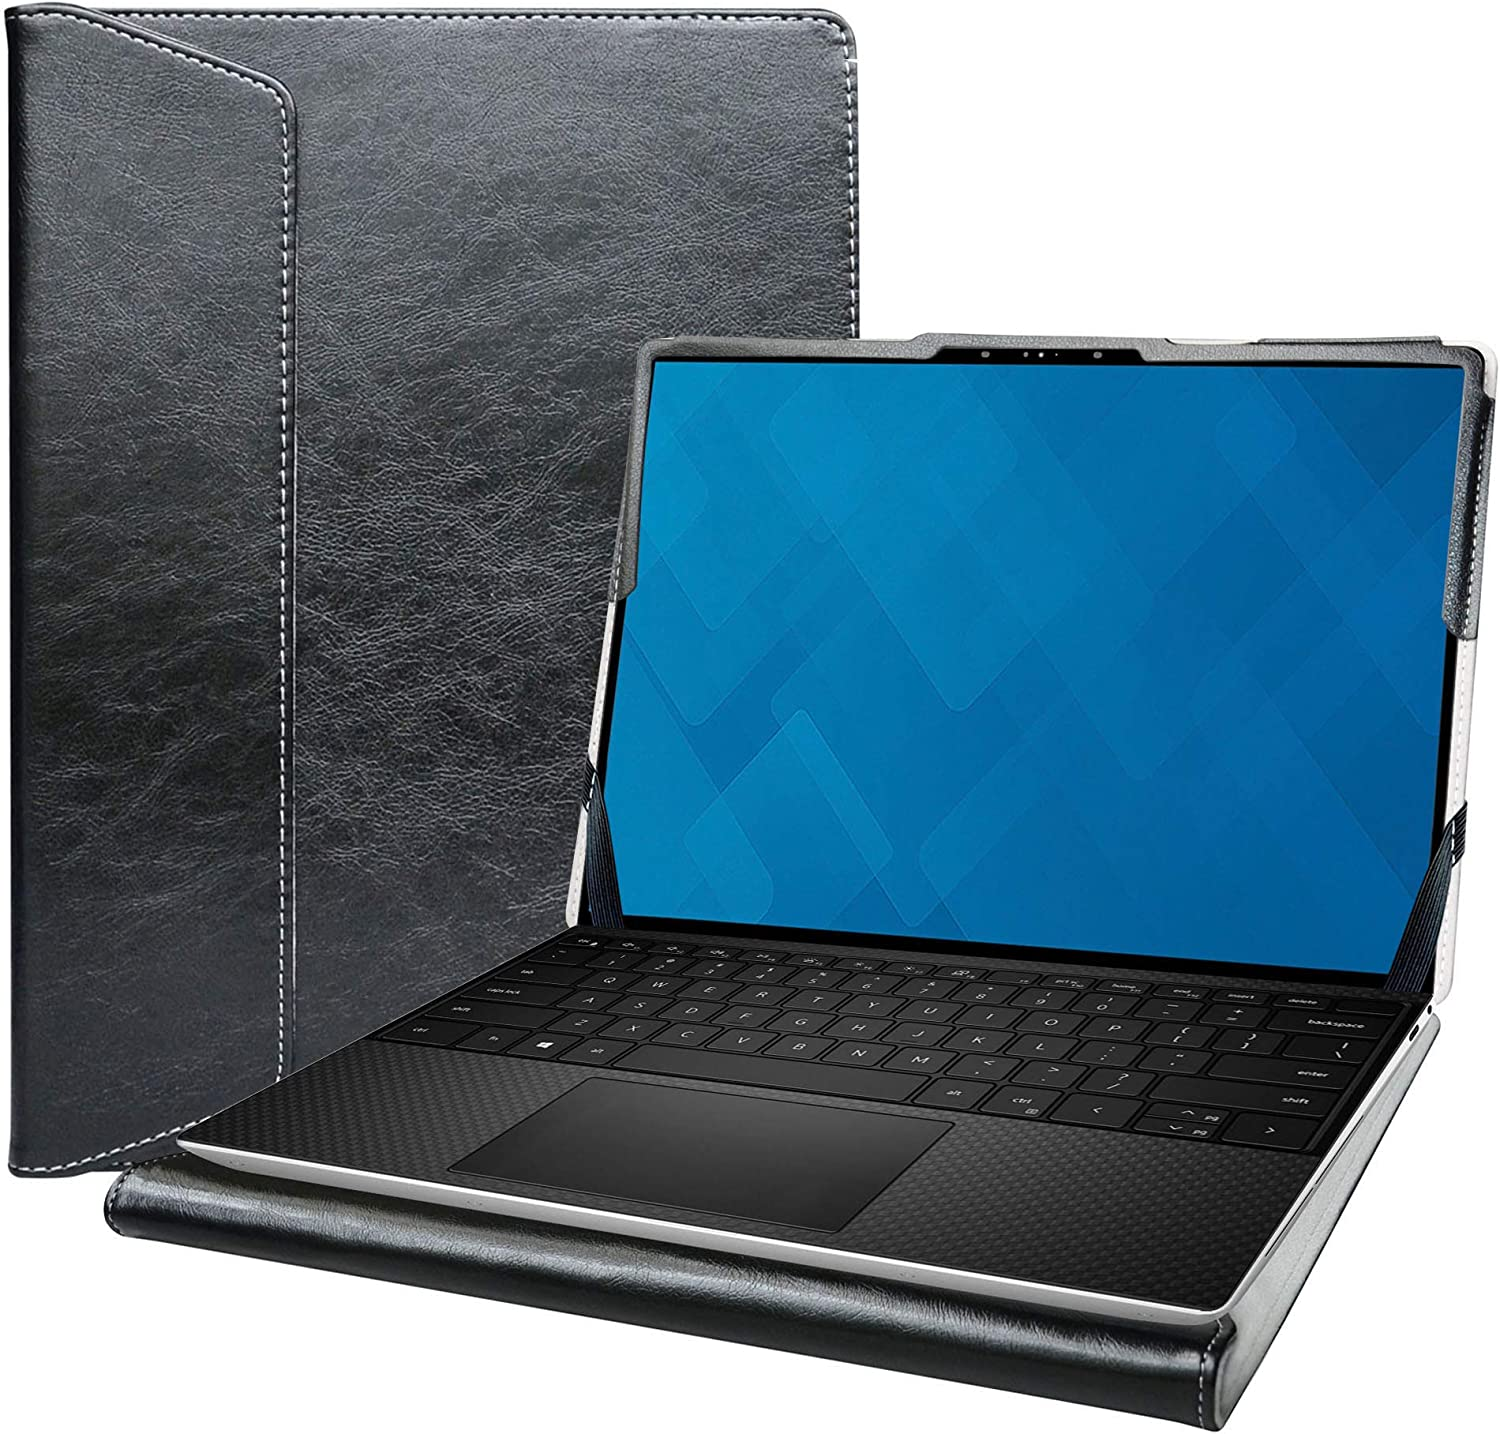 """Alapmk Protective Cover Case for 13.3"""" Dell XPS 13 9300 Series Laptop[Note:Not fit XPS 13 7390 9380 9370 9360 9350/XPS 13 2-in-1 9365 7390],Black"""